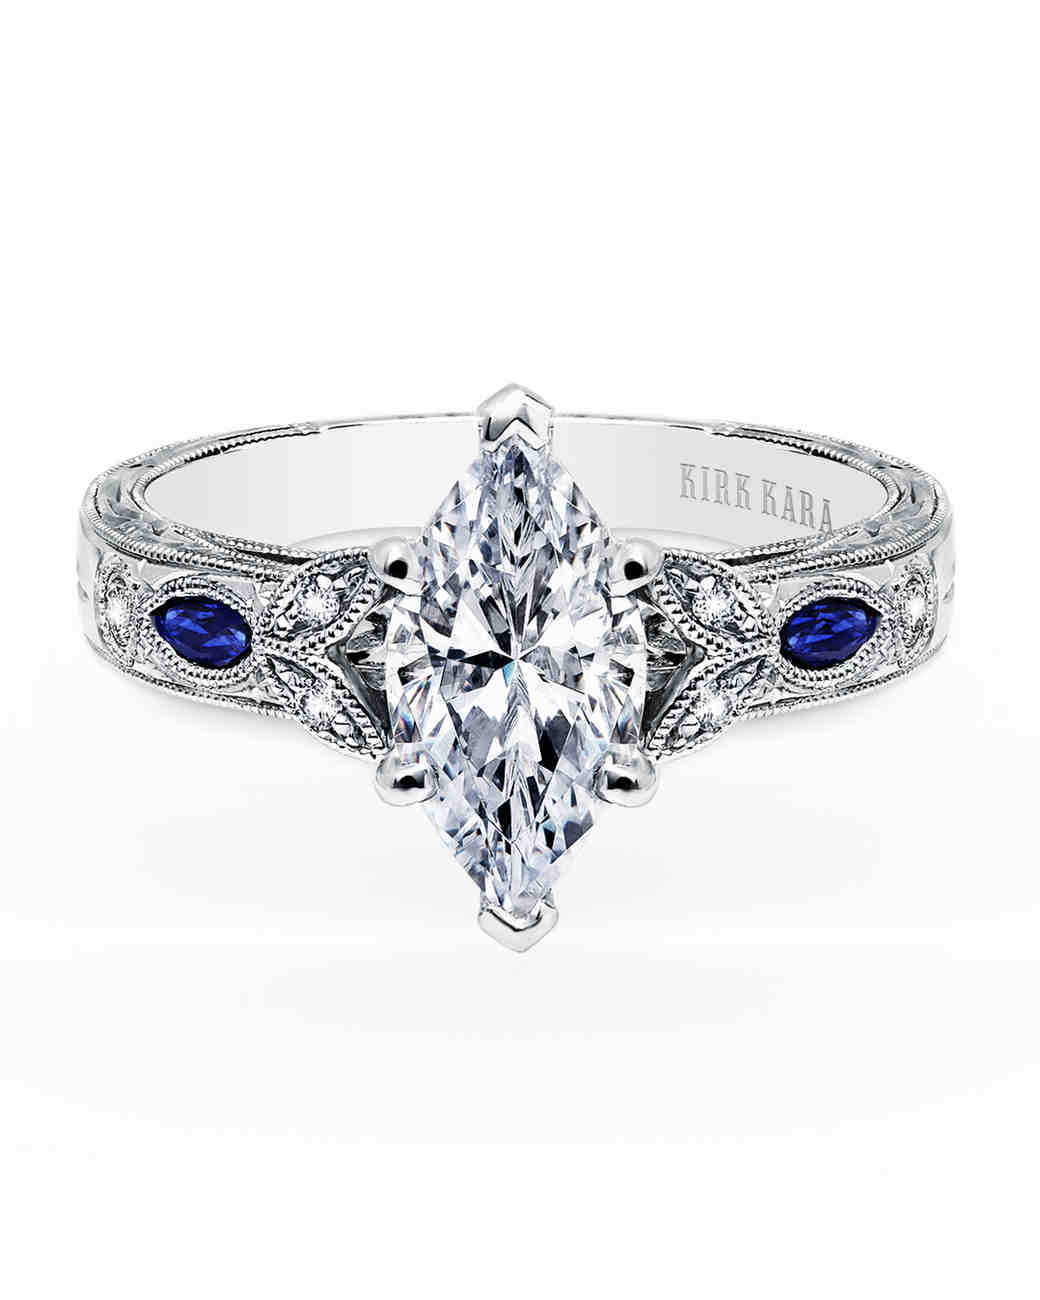 Kirk Kara Marquise-Cut Engagement Ring with Sapphires